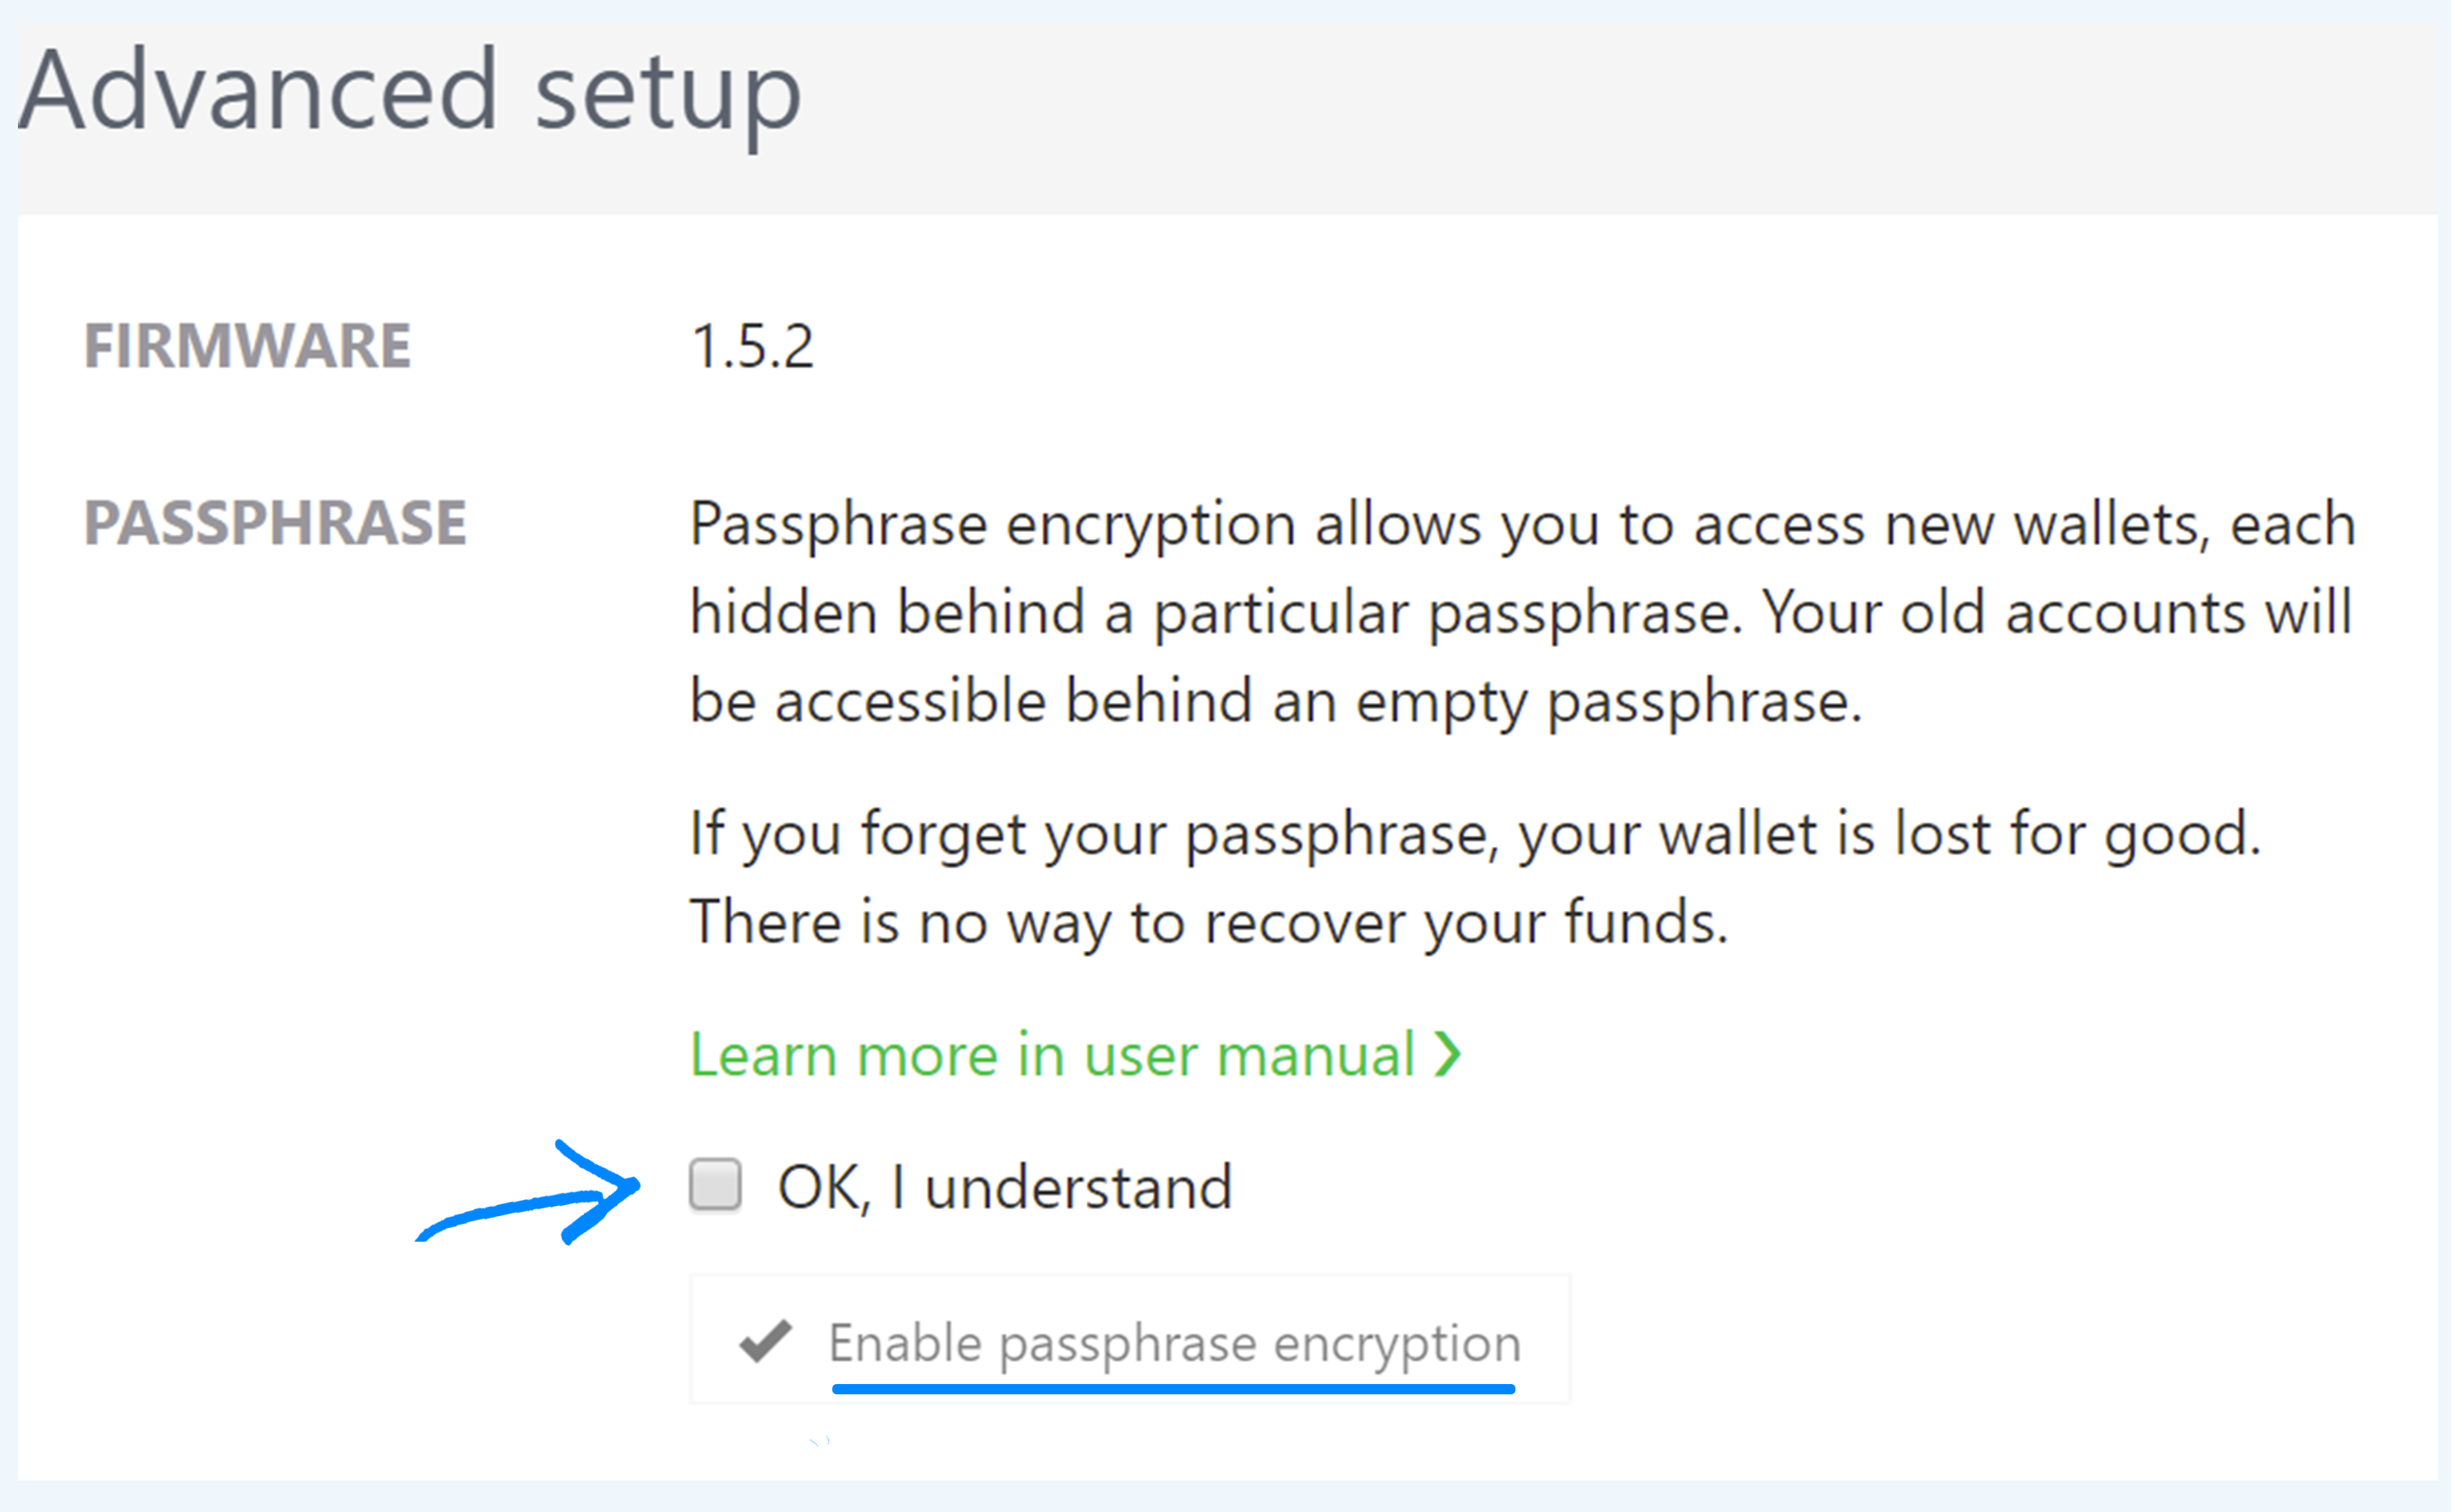 Enable passphrase encryption